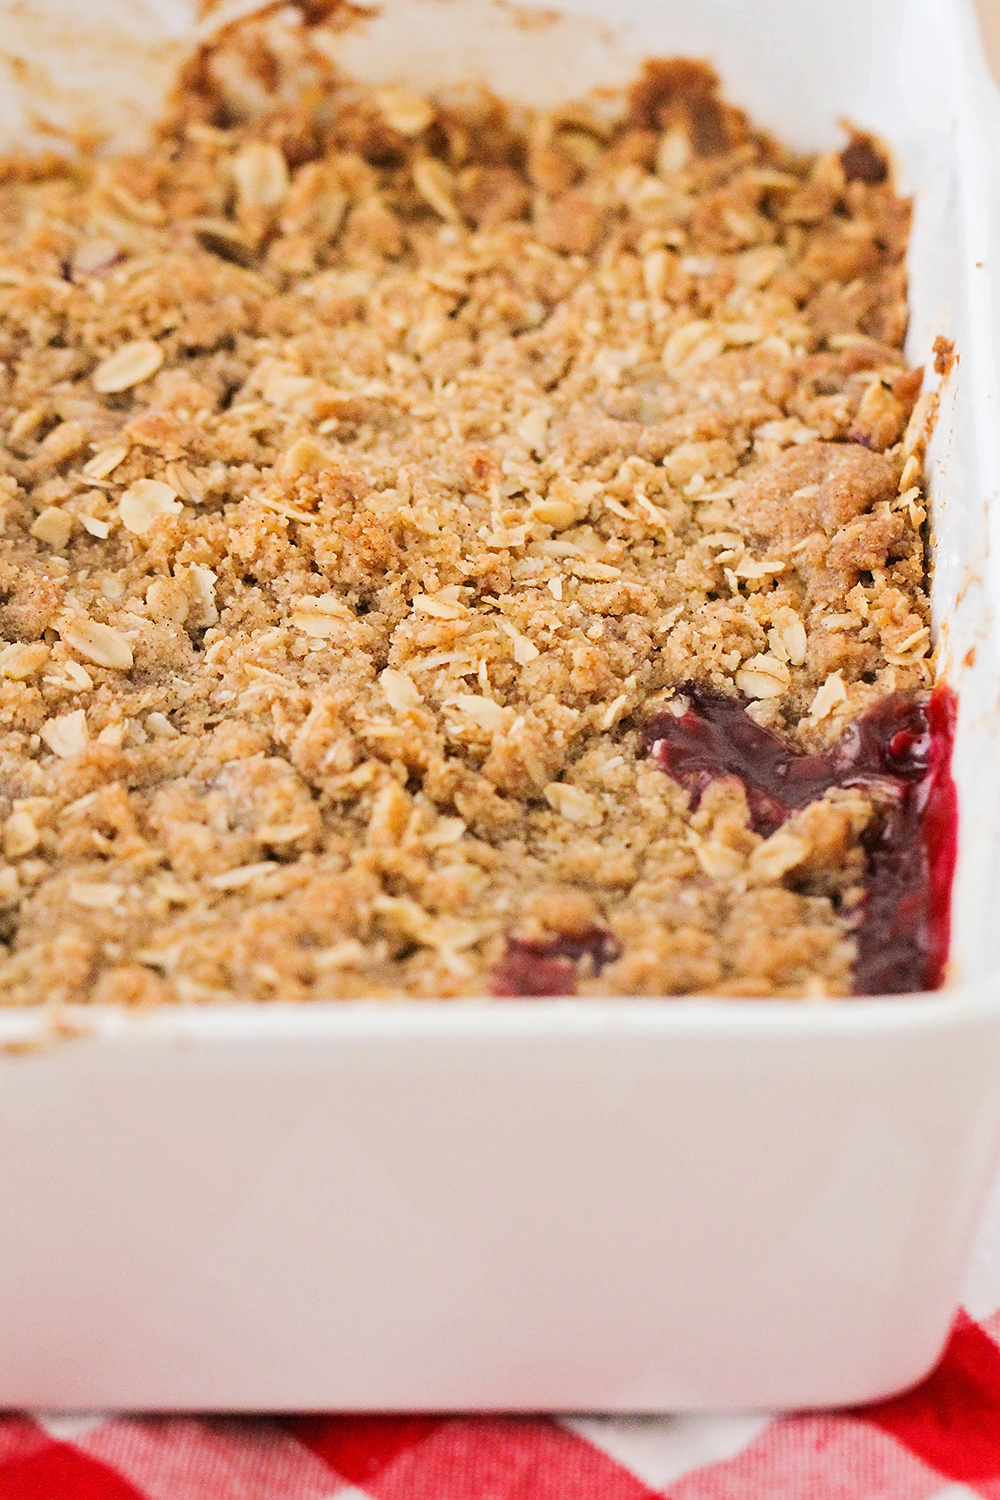 This cherry peach crisp is full of juicy summer fruit, and so easy to make. It's the perfect summer dessert!